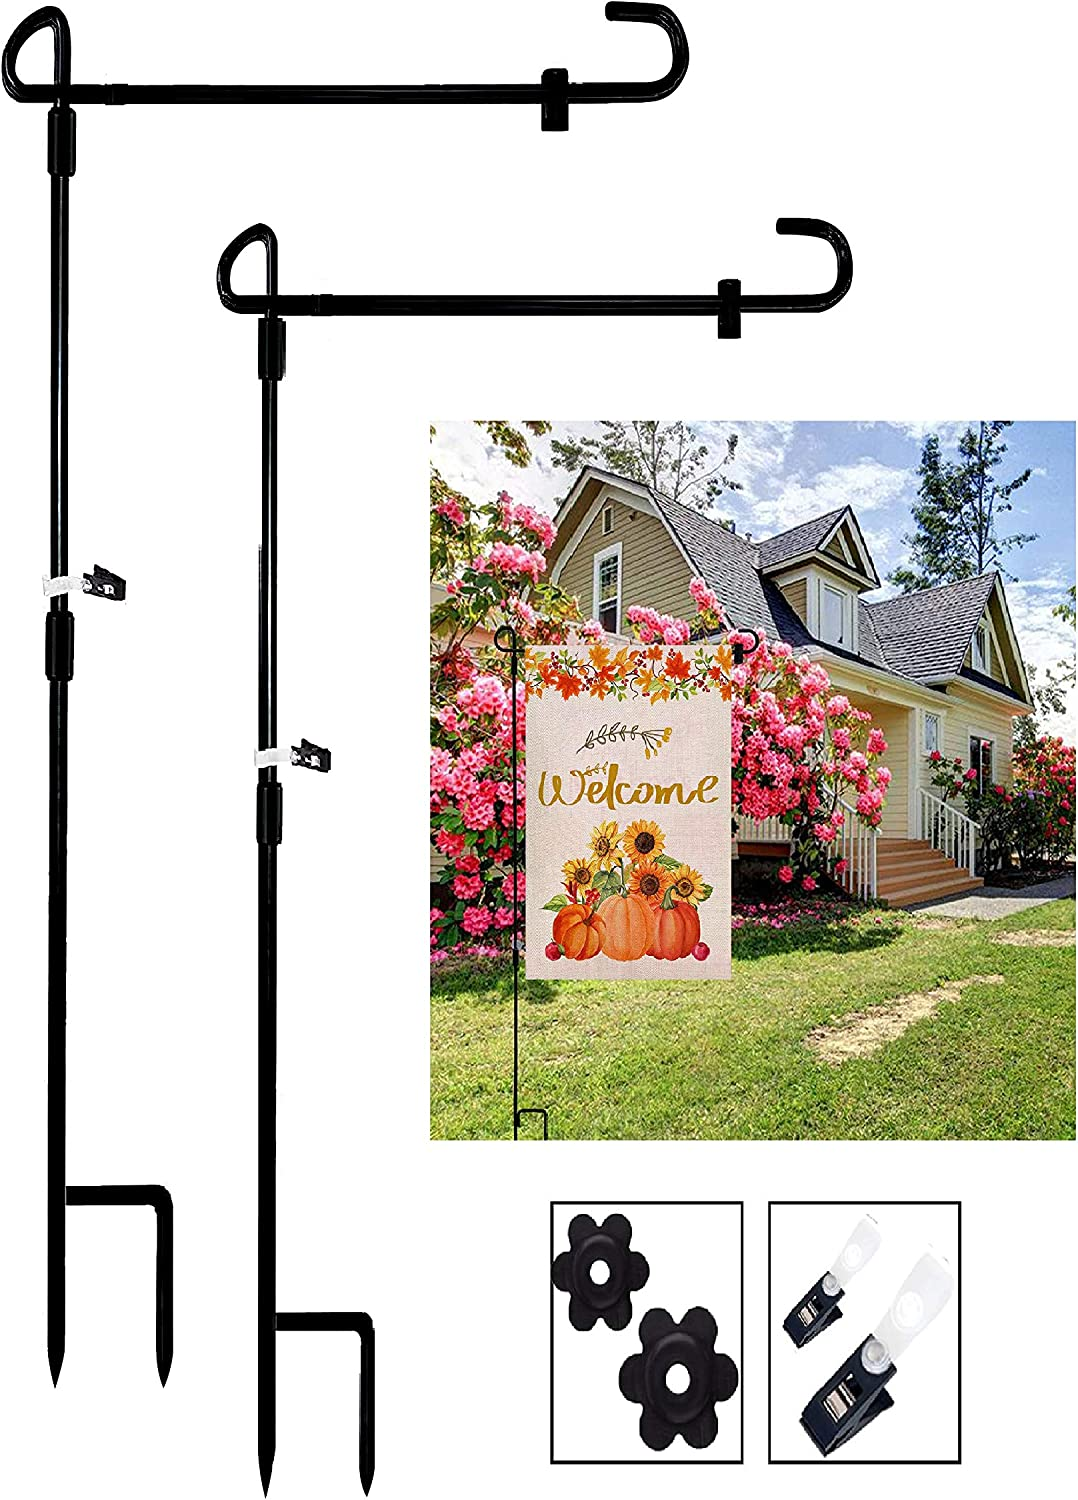 B.BLUERIDGE 2 Pack Garden Flag Holder Stand with Wind Clip and Stopper, Easy Install Coated Metal Construction Garden Flag Pole Set for Yard Seasonal and American Flags (Flag not Included)